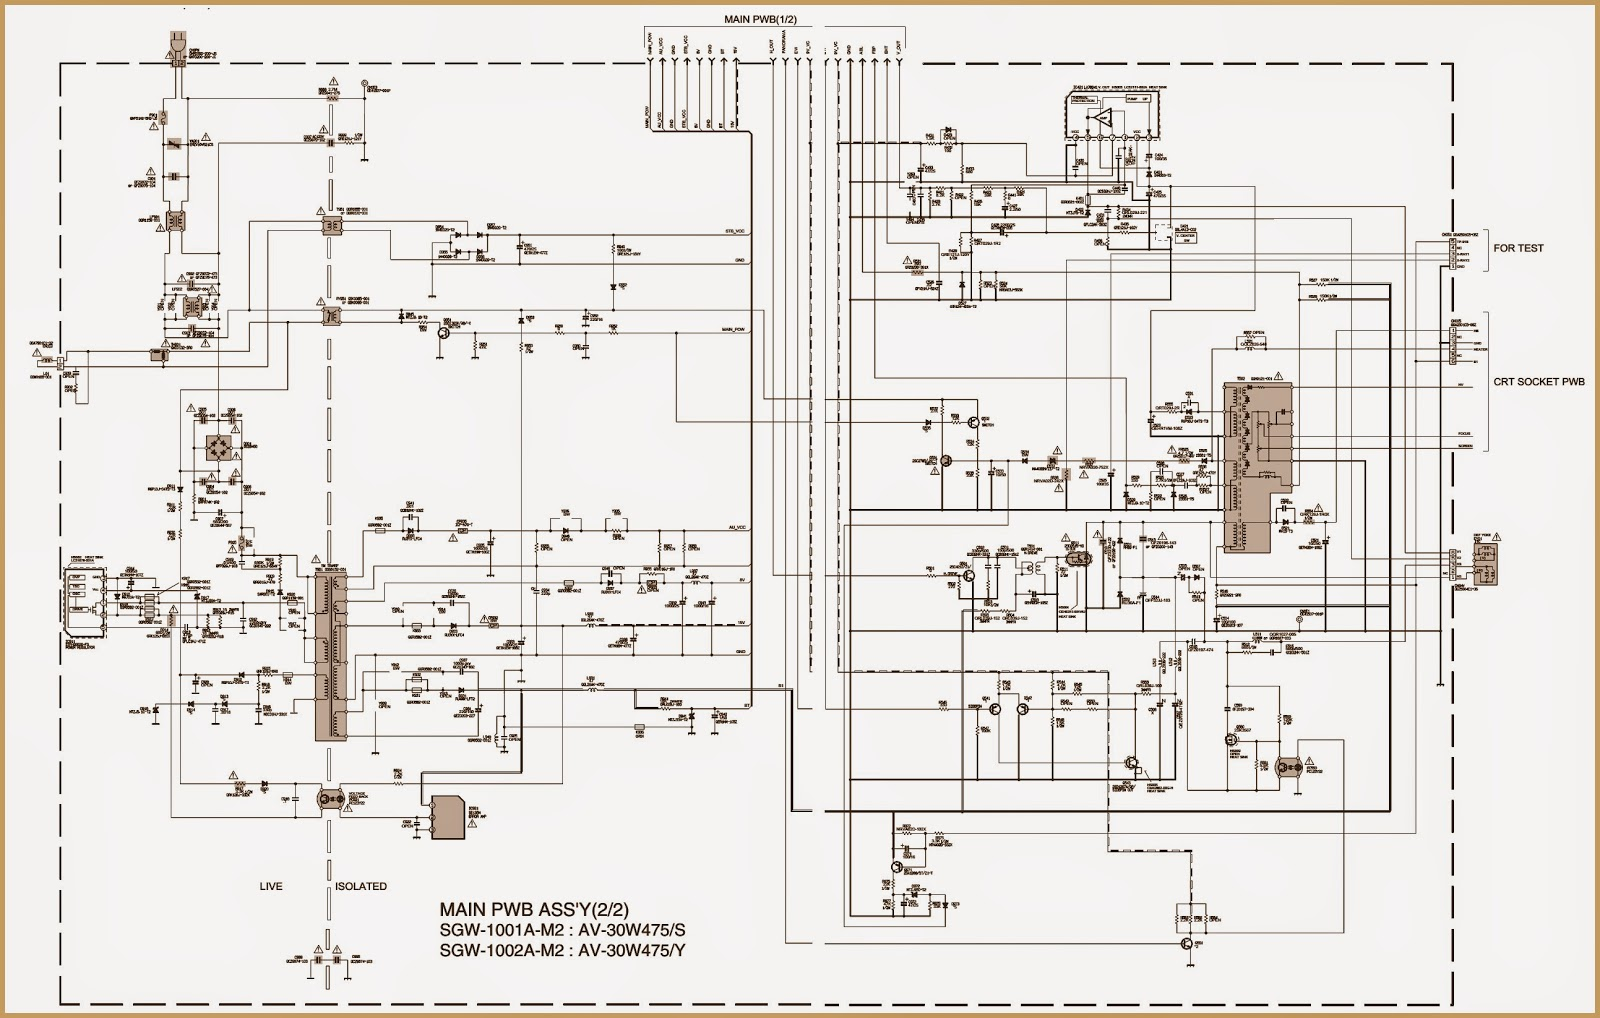 Jvc Av30w475 Crt Tv Smps Circuit Diagram Urc Set Up Codes Wiring Pwb Part At Main Board Solder Side